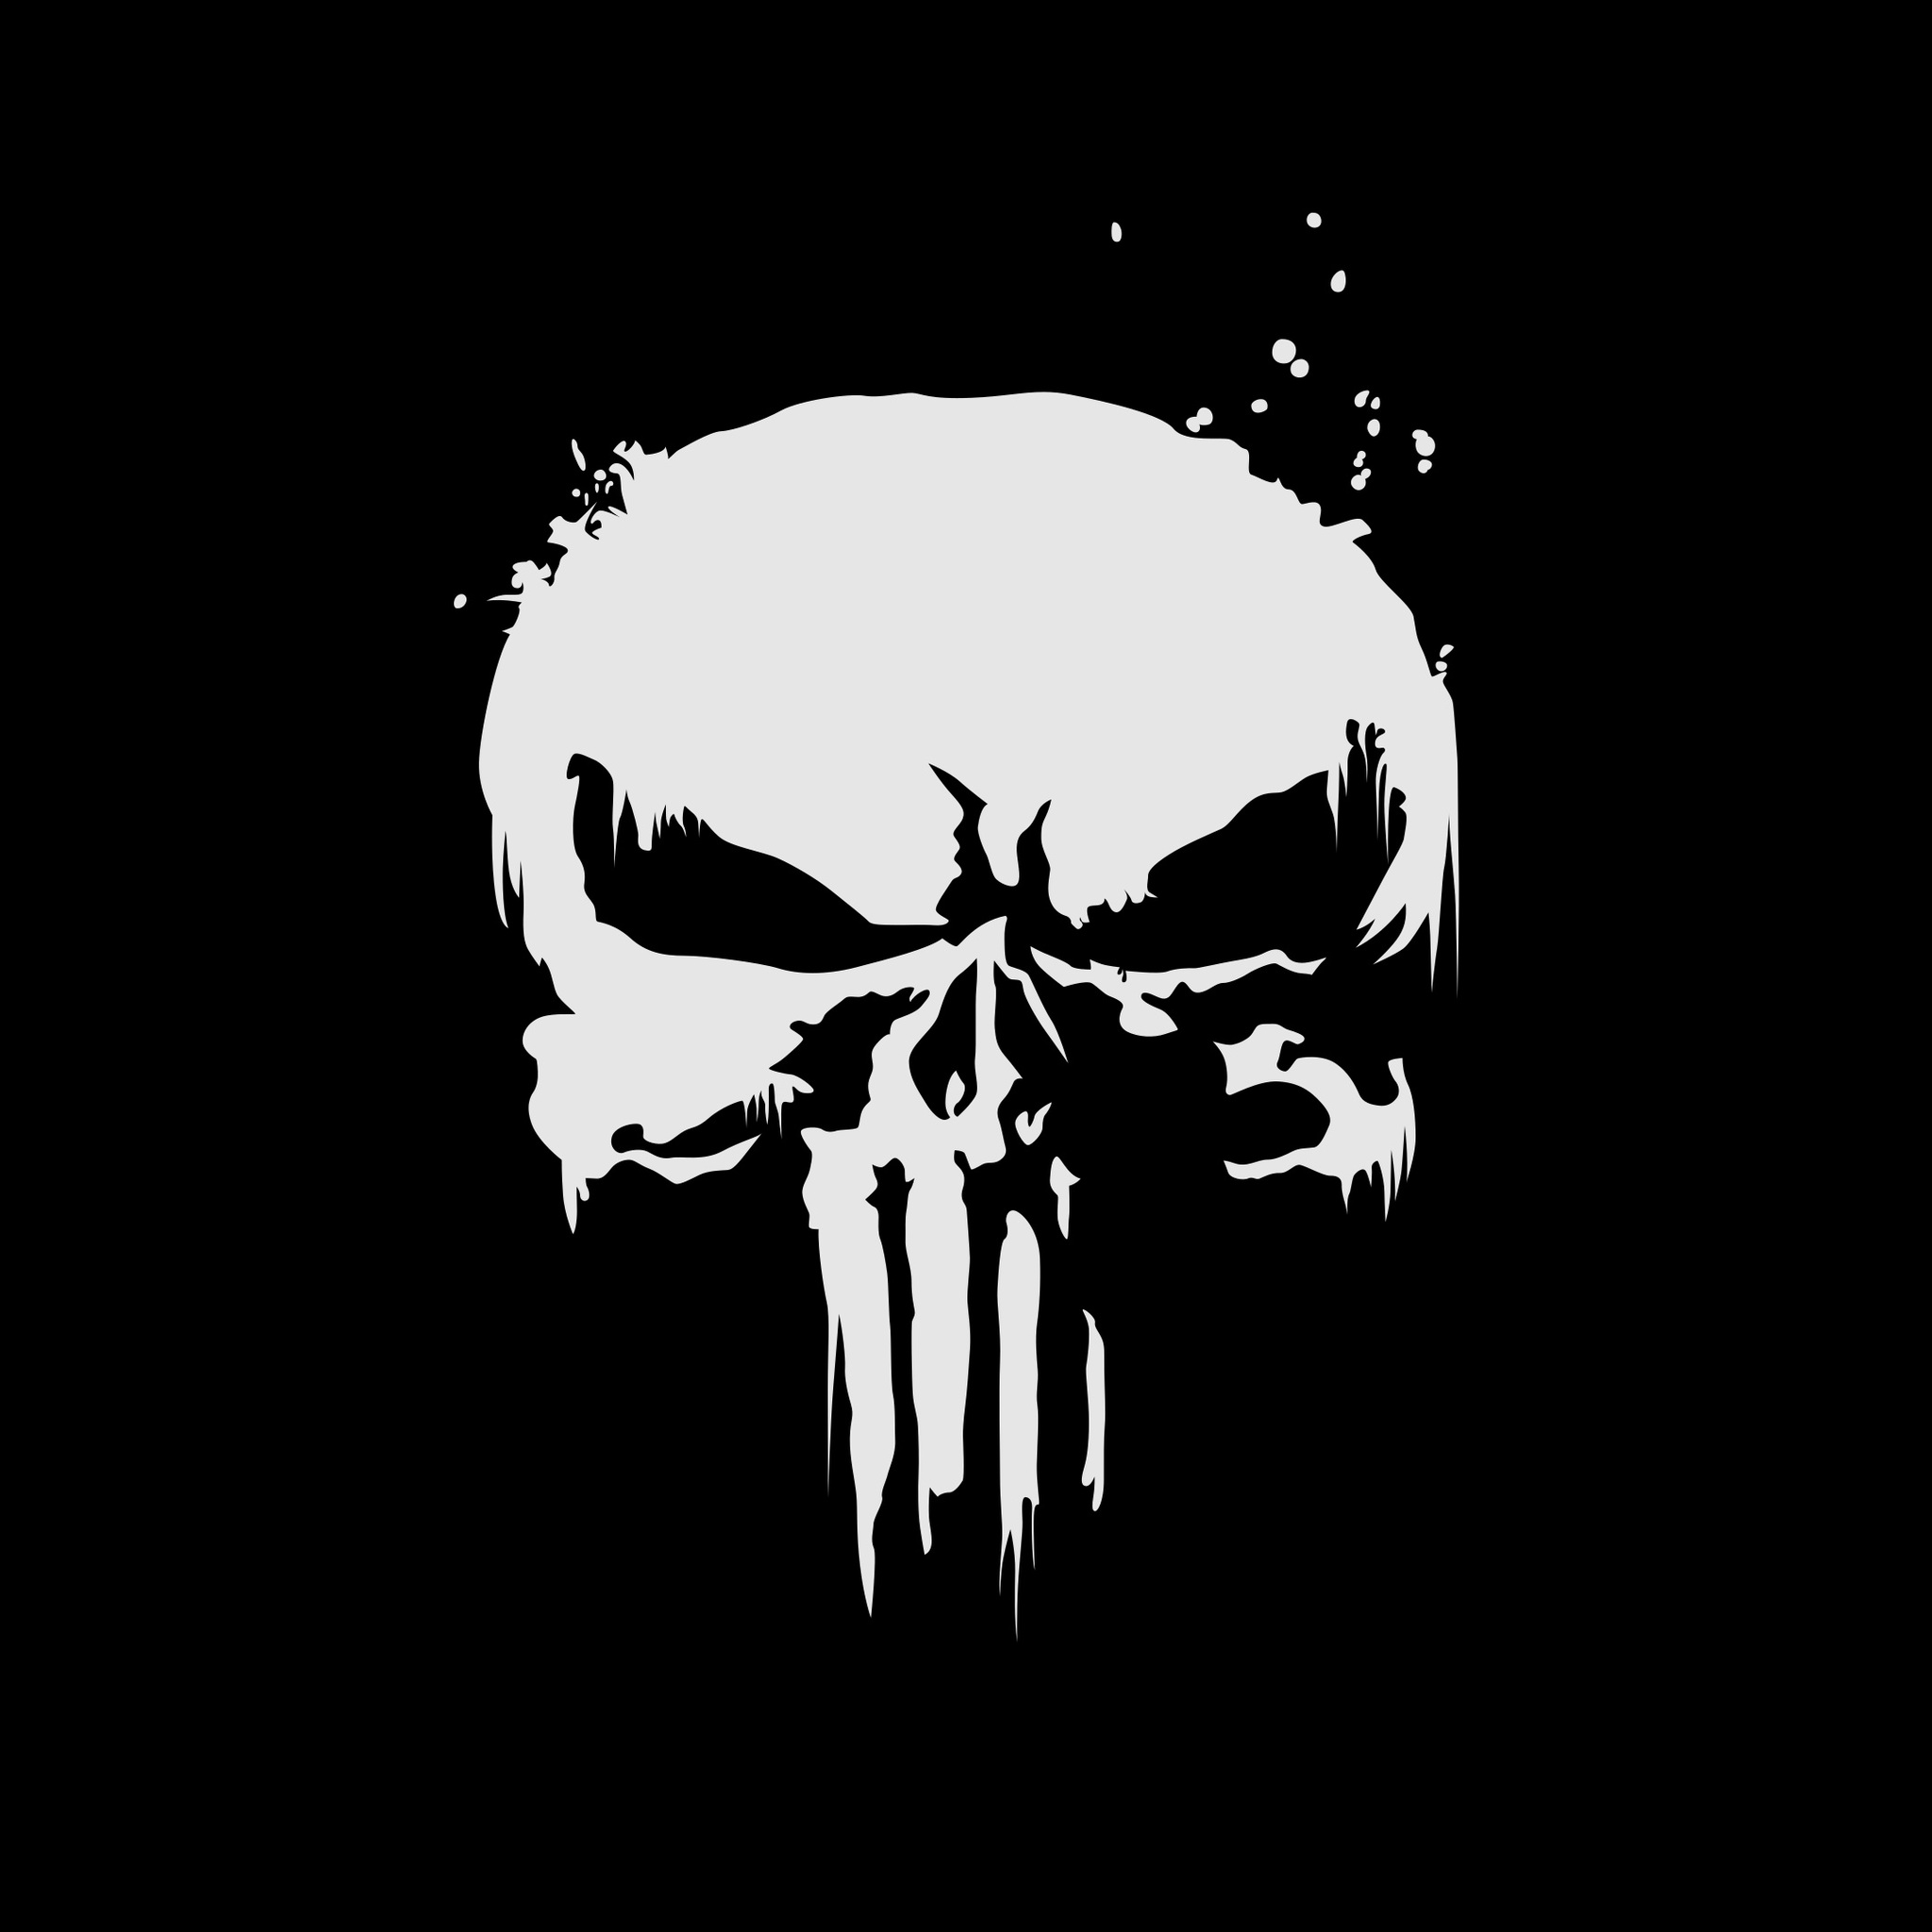 2048x2048 The Punisher Logo 4k Ipad Air HD 4k Wallpapers